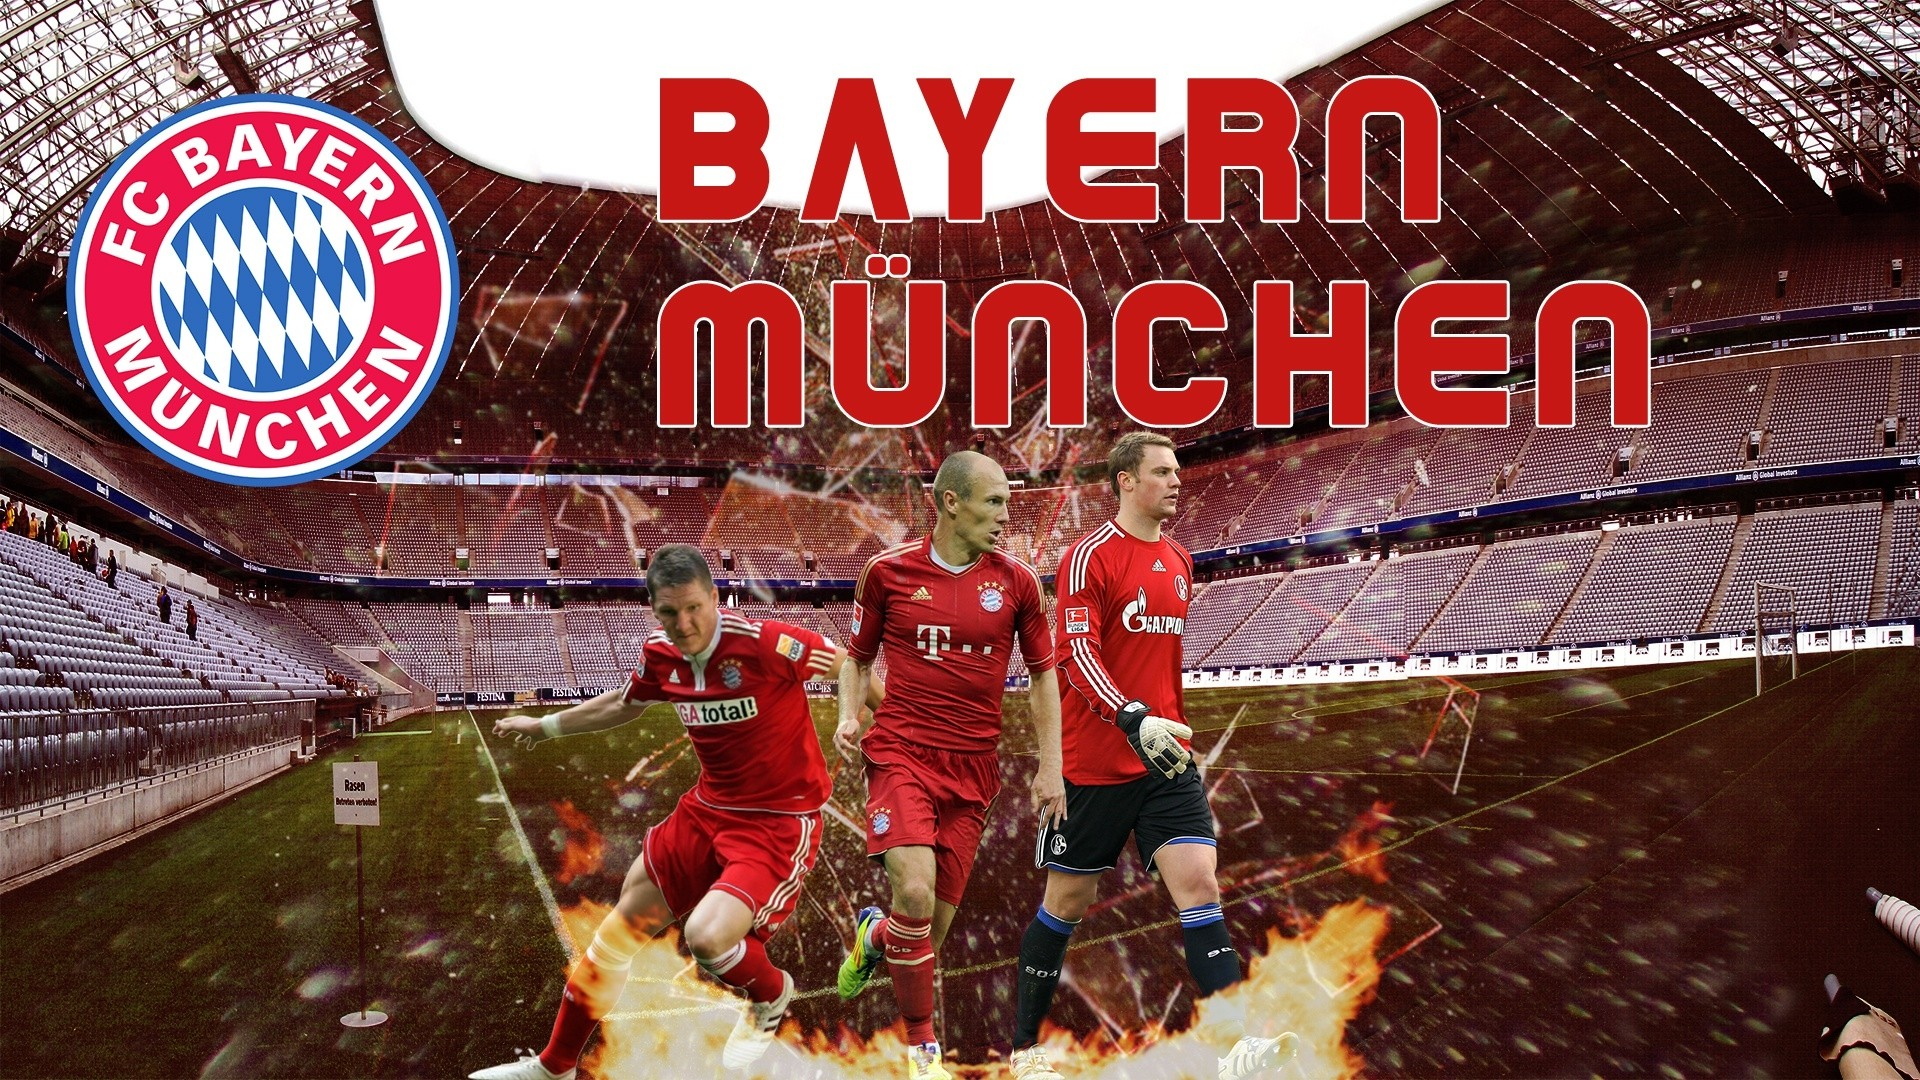 Bayern Munich download nice wallpaper